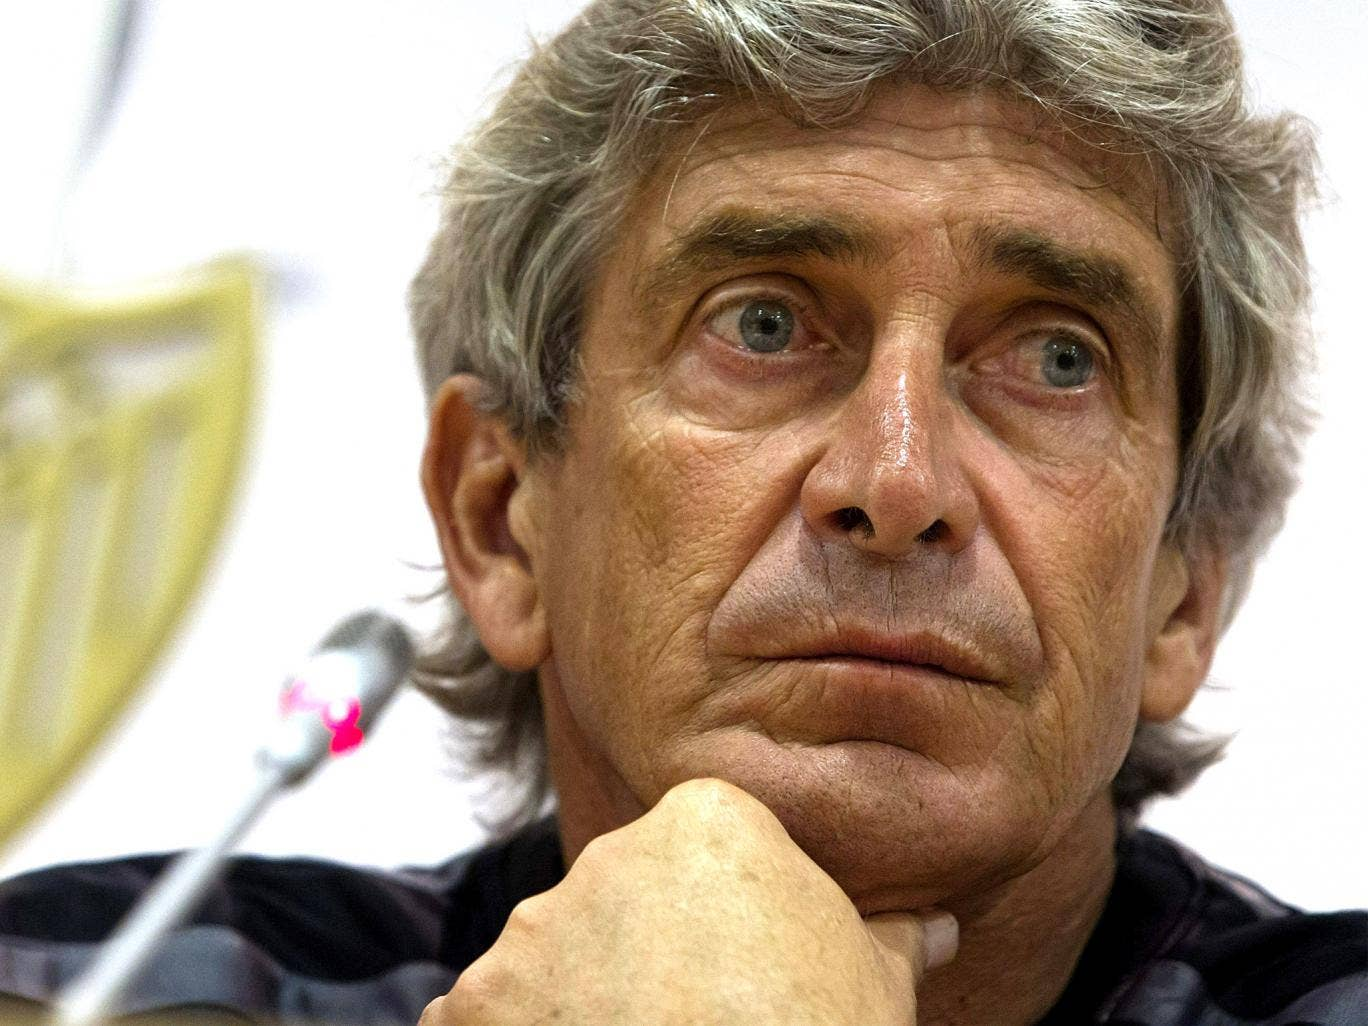 Manuel Pellegrini, pictured, will be happy to face Jose Mourinho if the Portuguese goes back to Chelsea